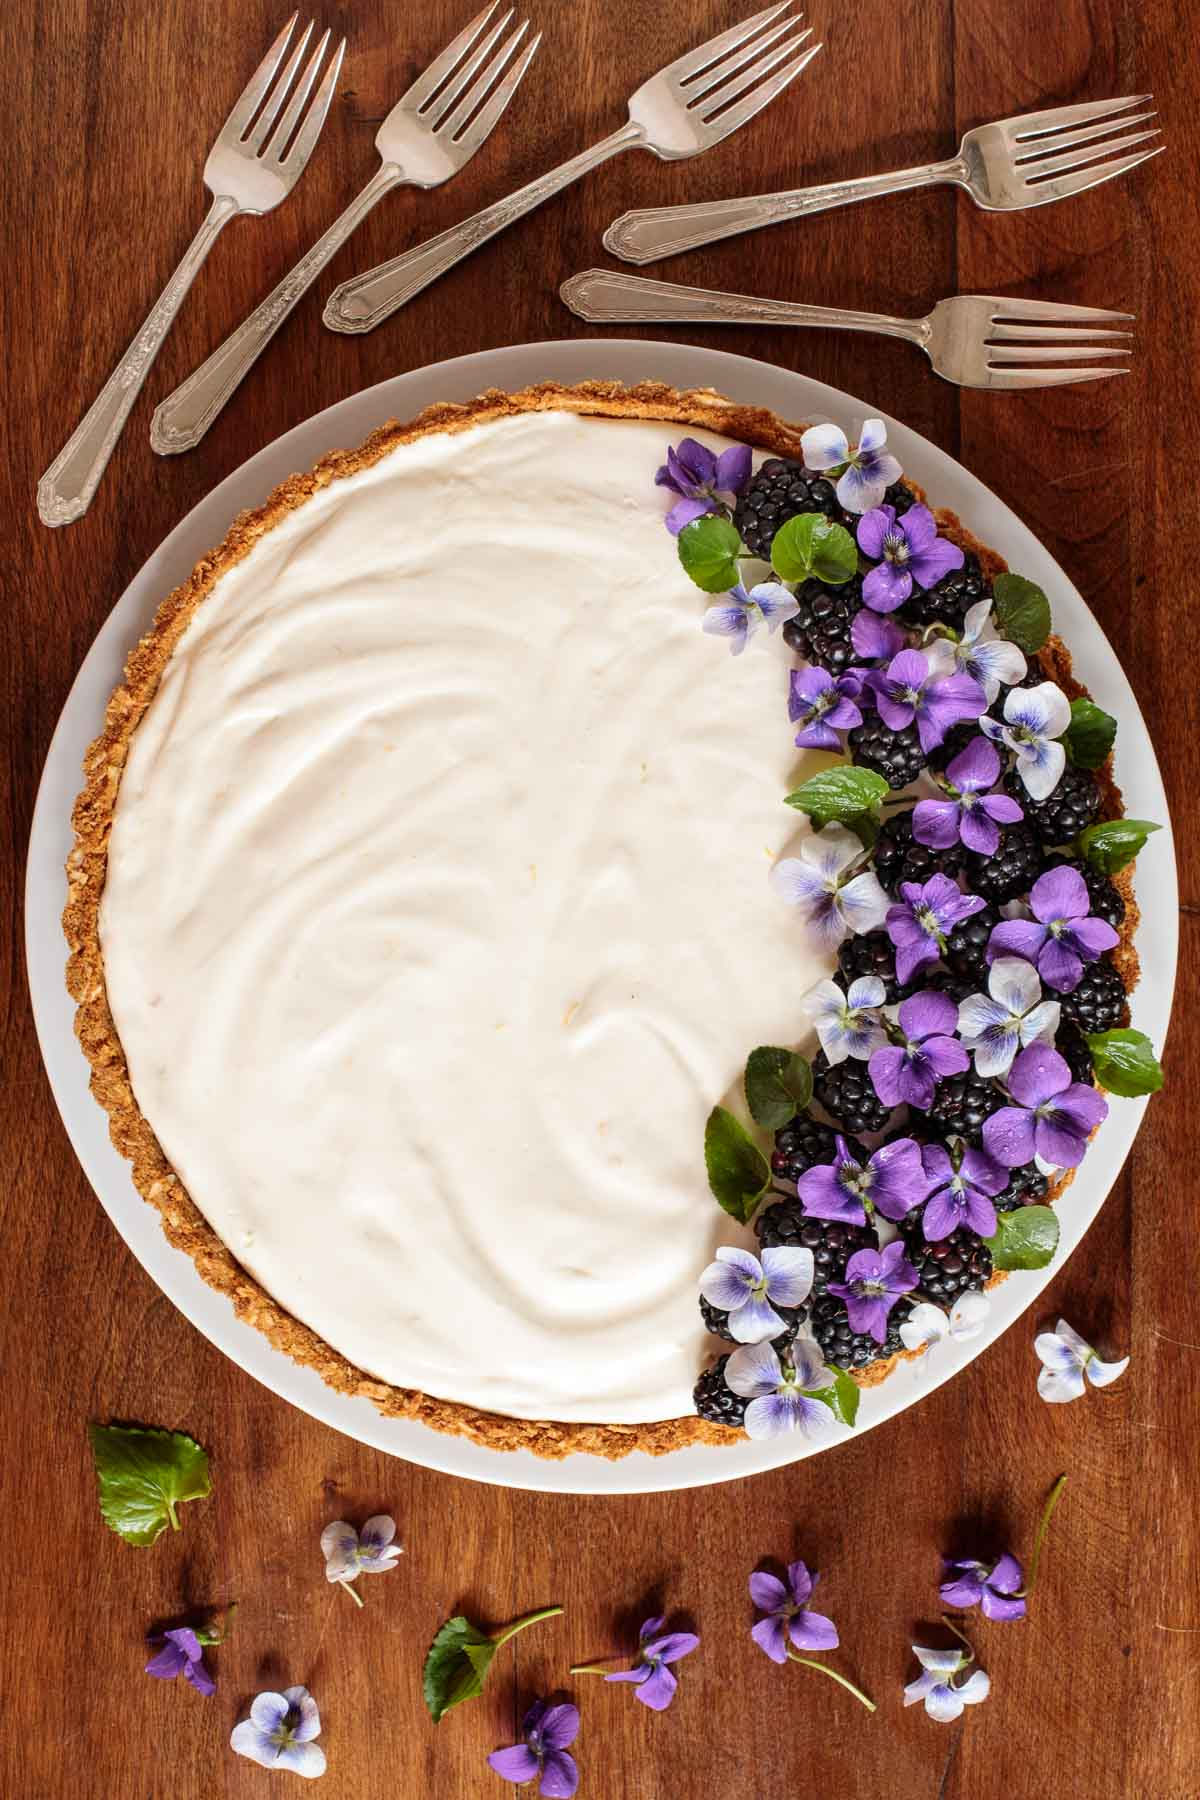 Overhead photo of Limoncello Lemon Tart garnished with purple flowers. on a wood table.